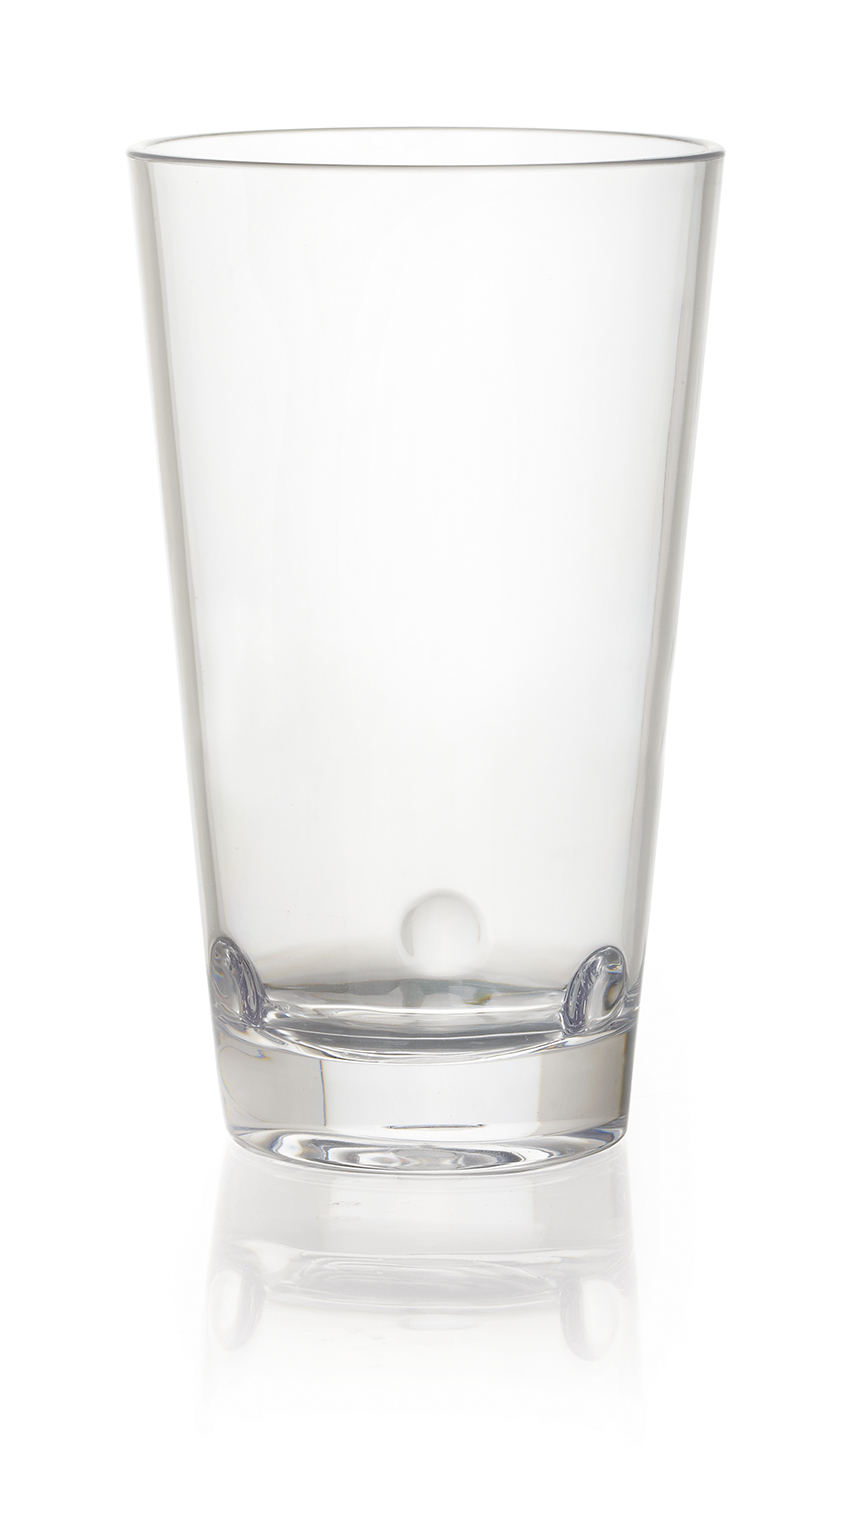 "16 oz. (16.8 oz. rim-full), 3.37"" Stackable Beverage, 5.7"" tall"